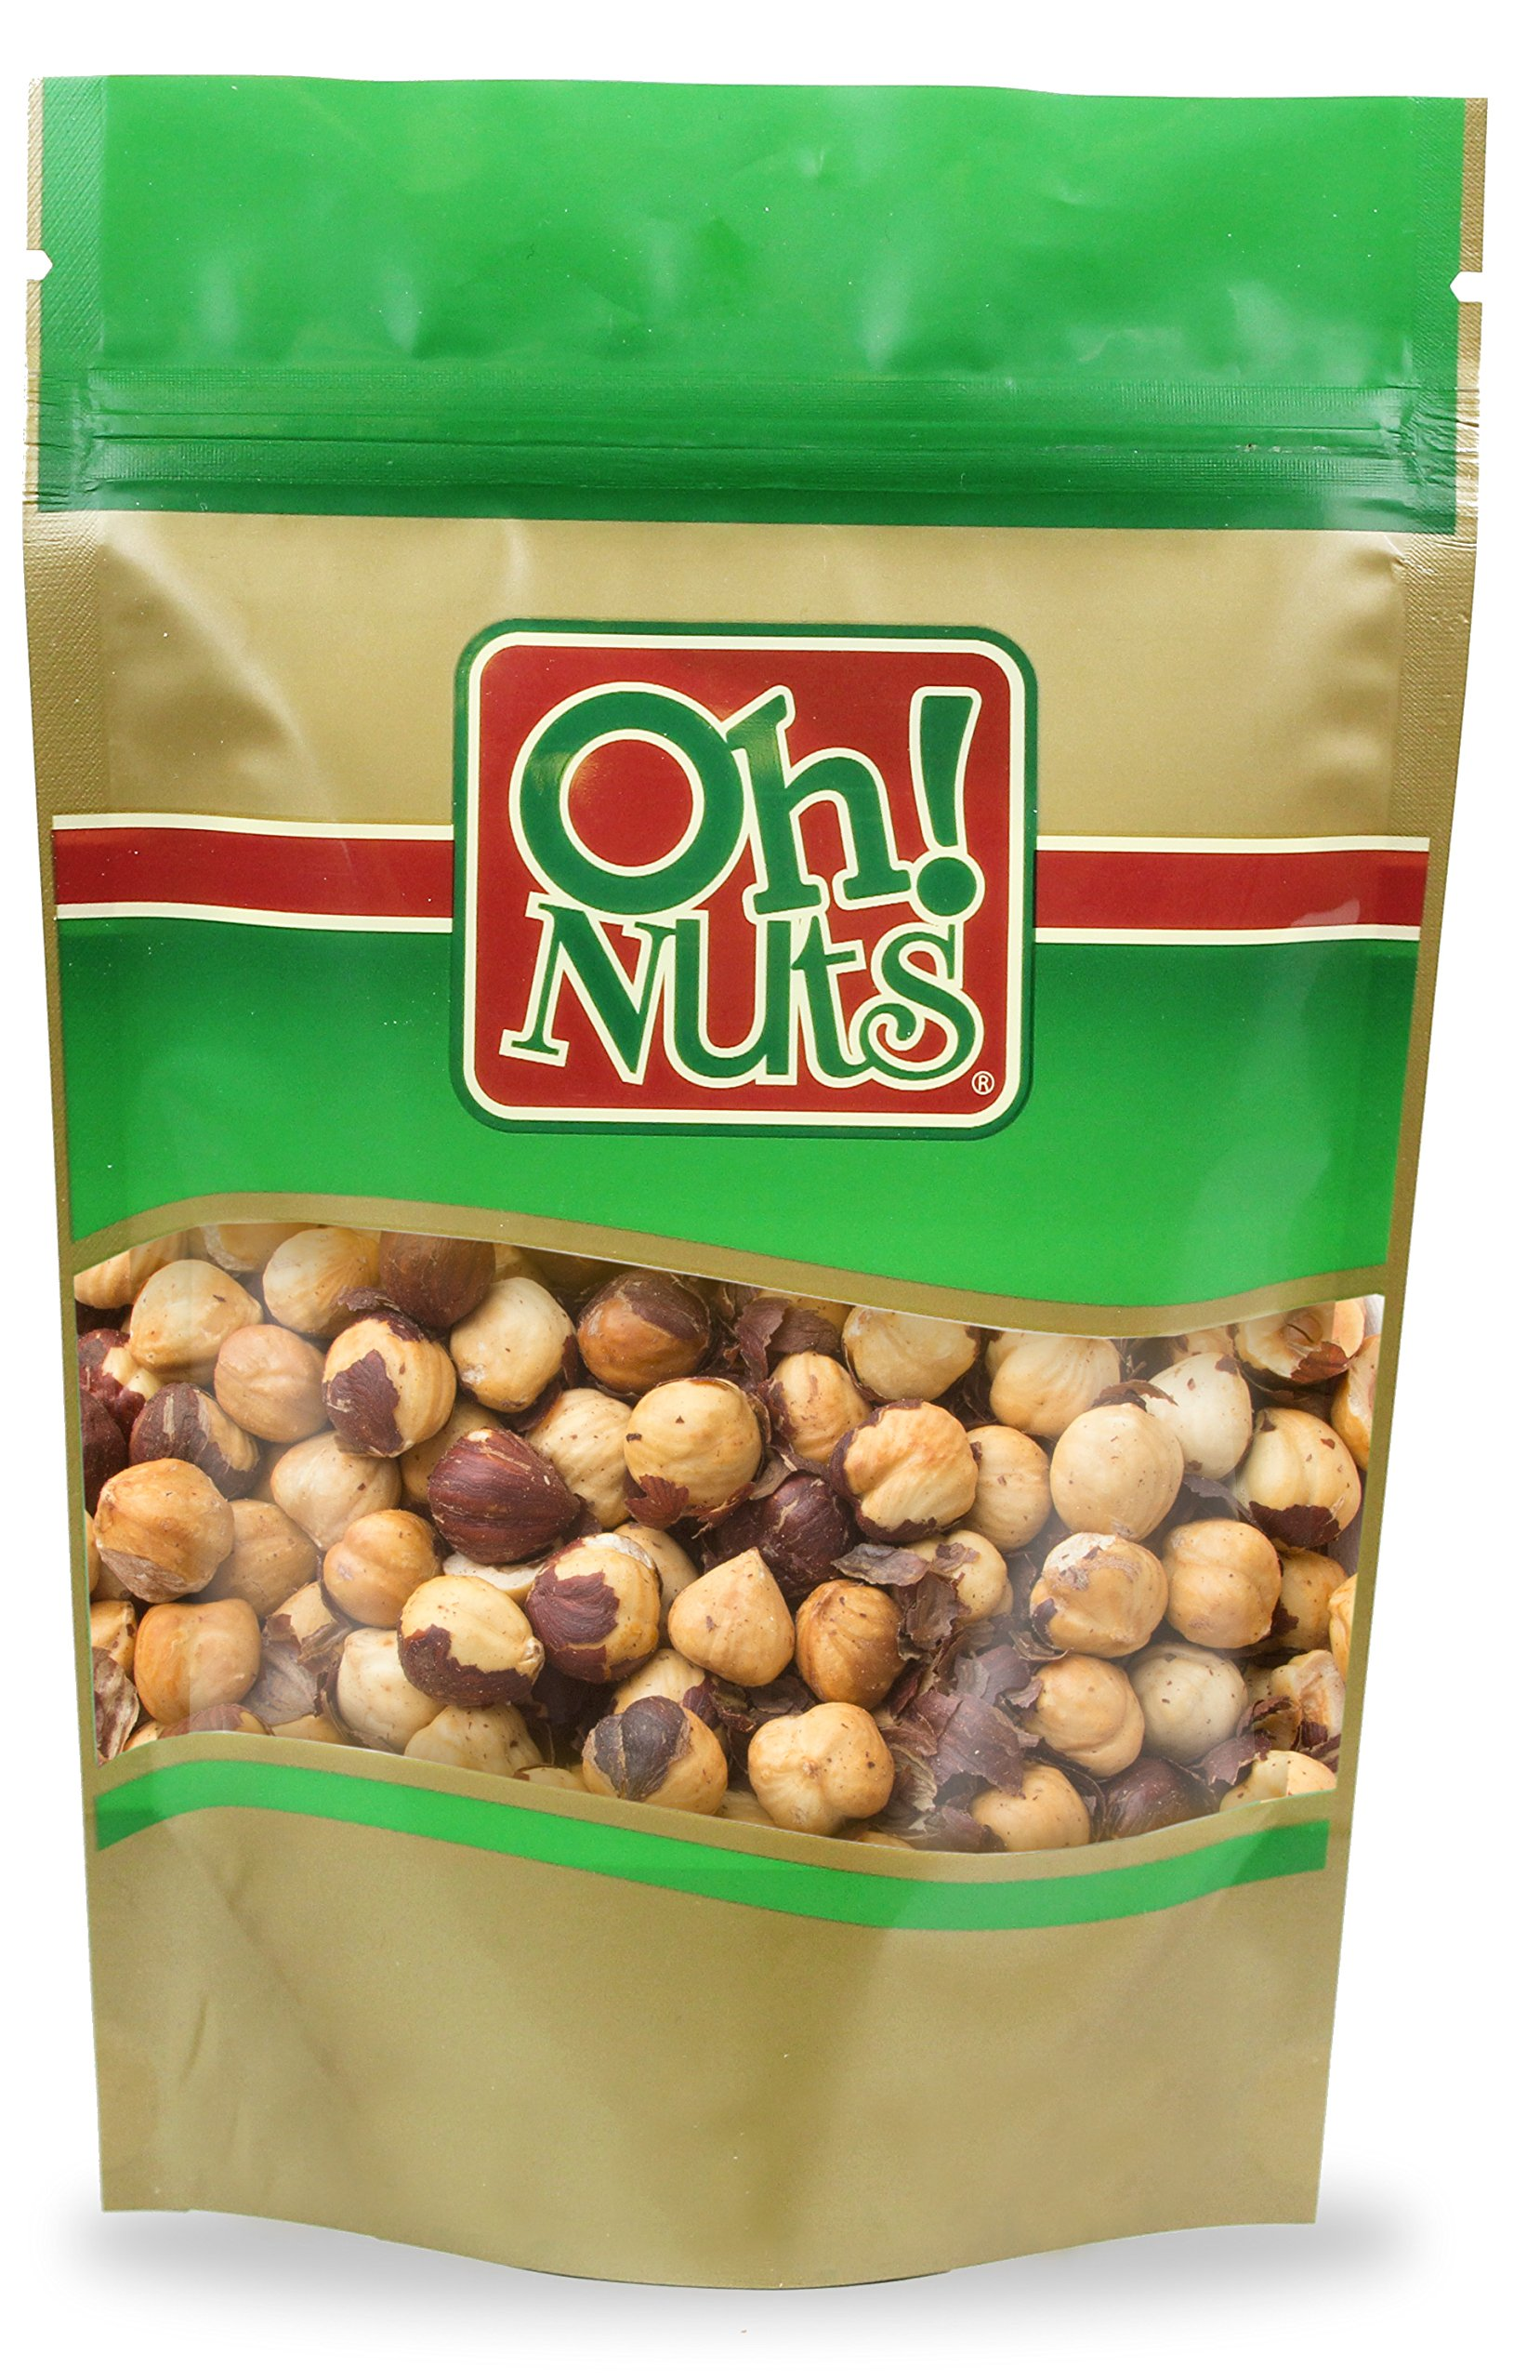 Hazelnuts Roasted Salted Healthy Nuts, Hazelnuts Filberts Dry Roasted with NO ADDED OILS - Oh! Nuts (2 LB HAzelnuts Roasted Salted) by Oh! Nuts®